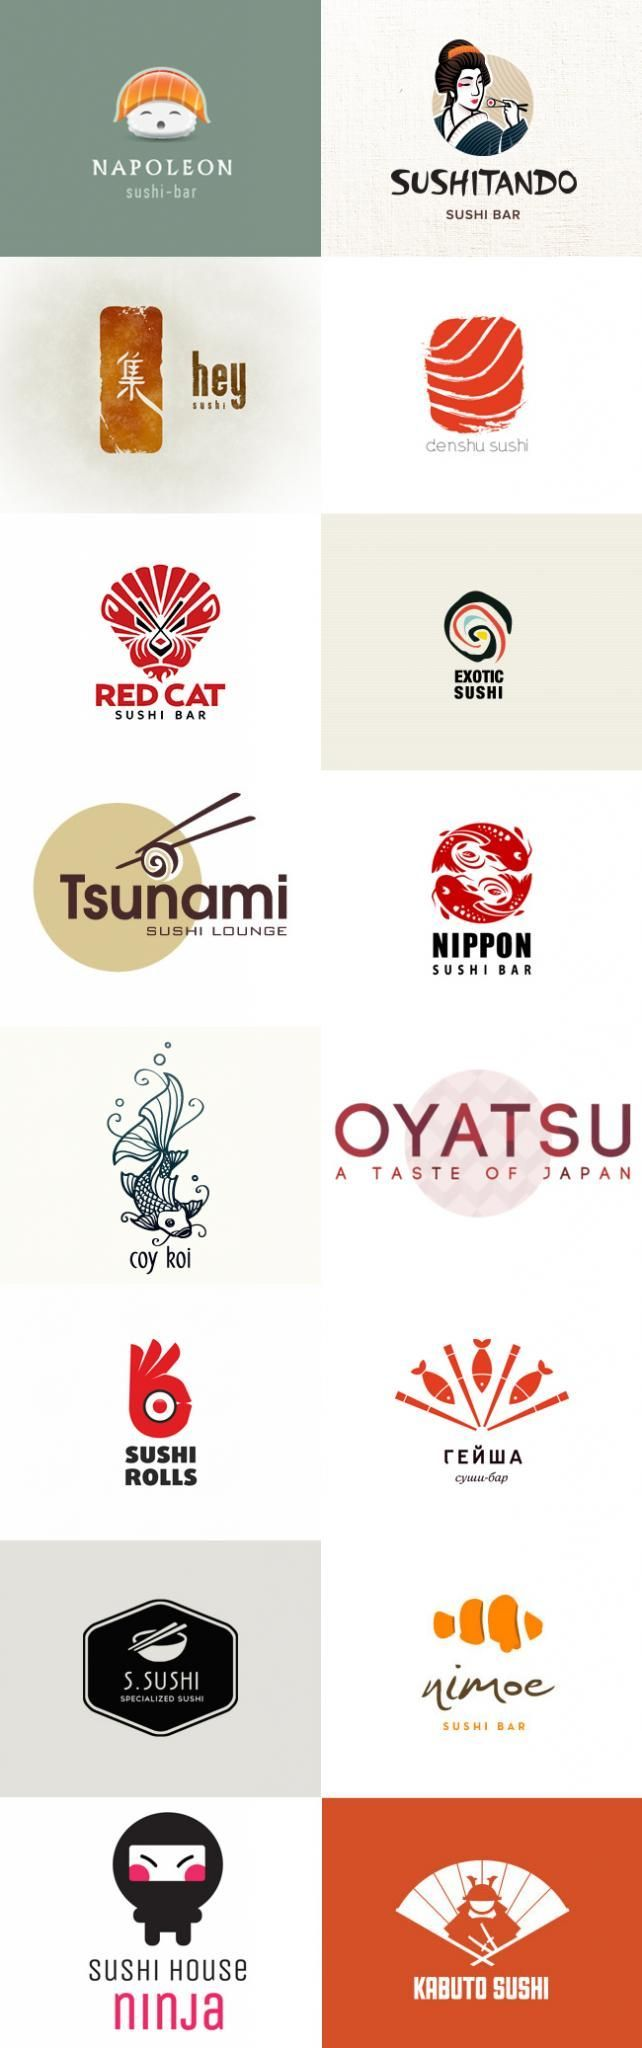 Awesome logos to inspire.